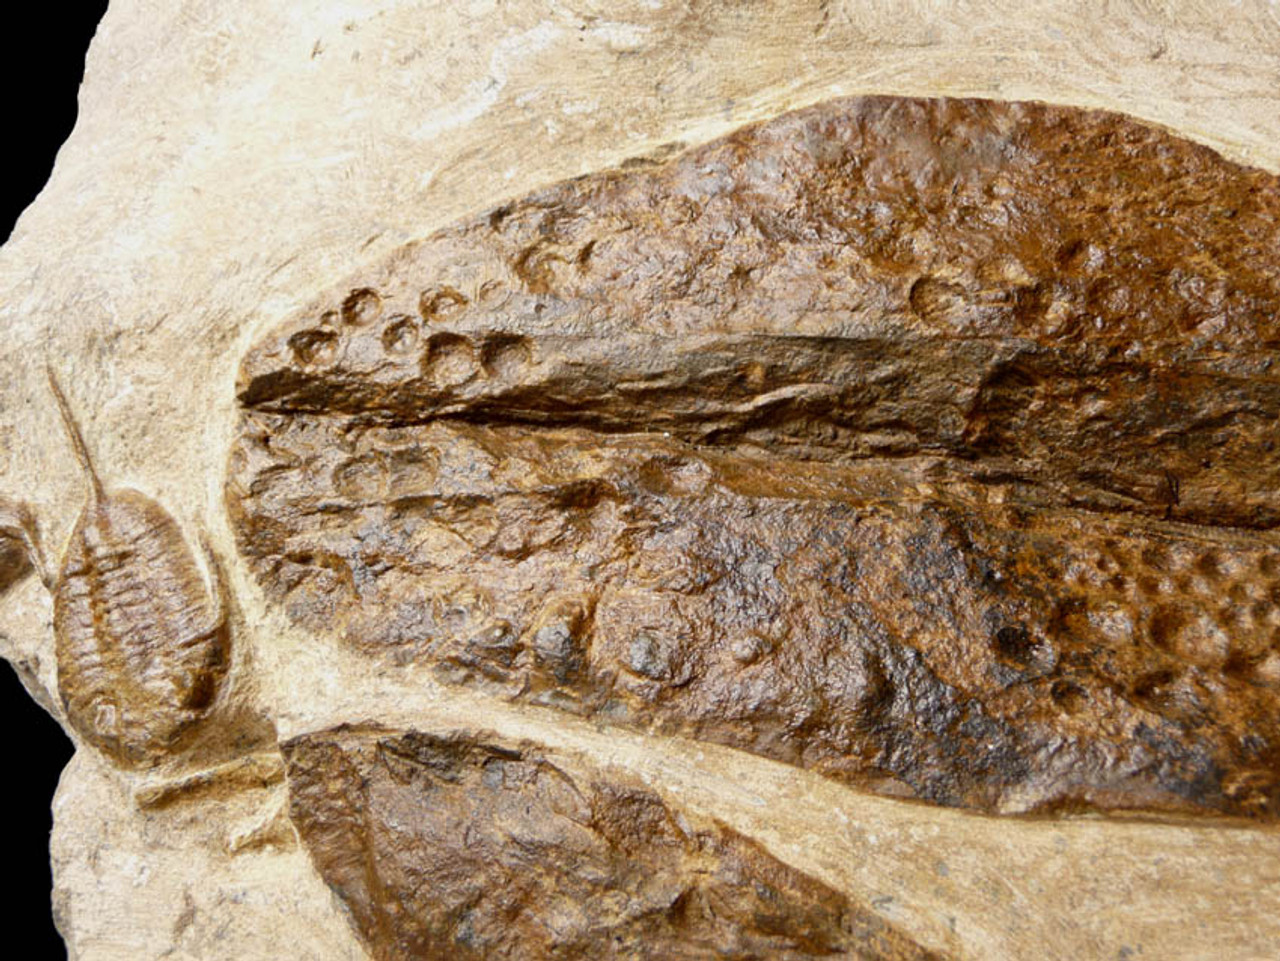 GIANT CONULARIIDA FOSSILS WITH SELENOPELTIS AND OTHER TRILOBITES ON LARGE ORDOVICIAN PREHISTORIC MARINE LIFE STONE  *CON001